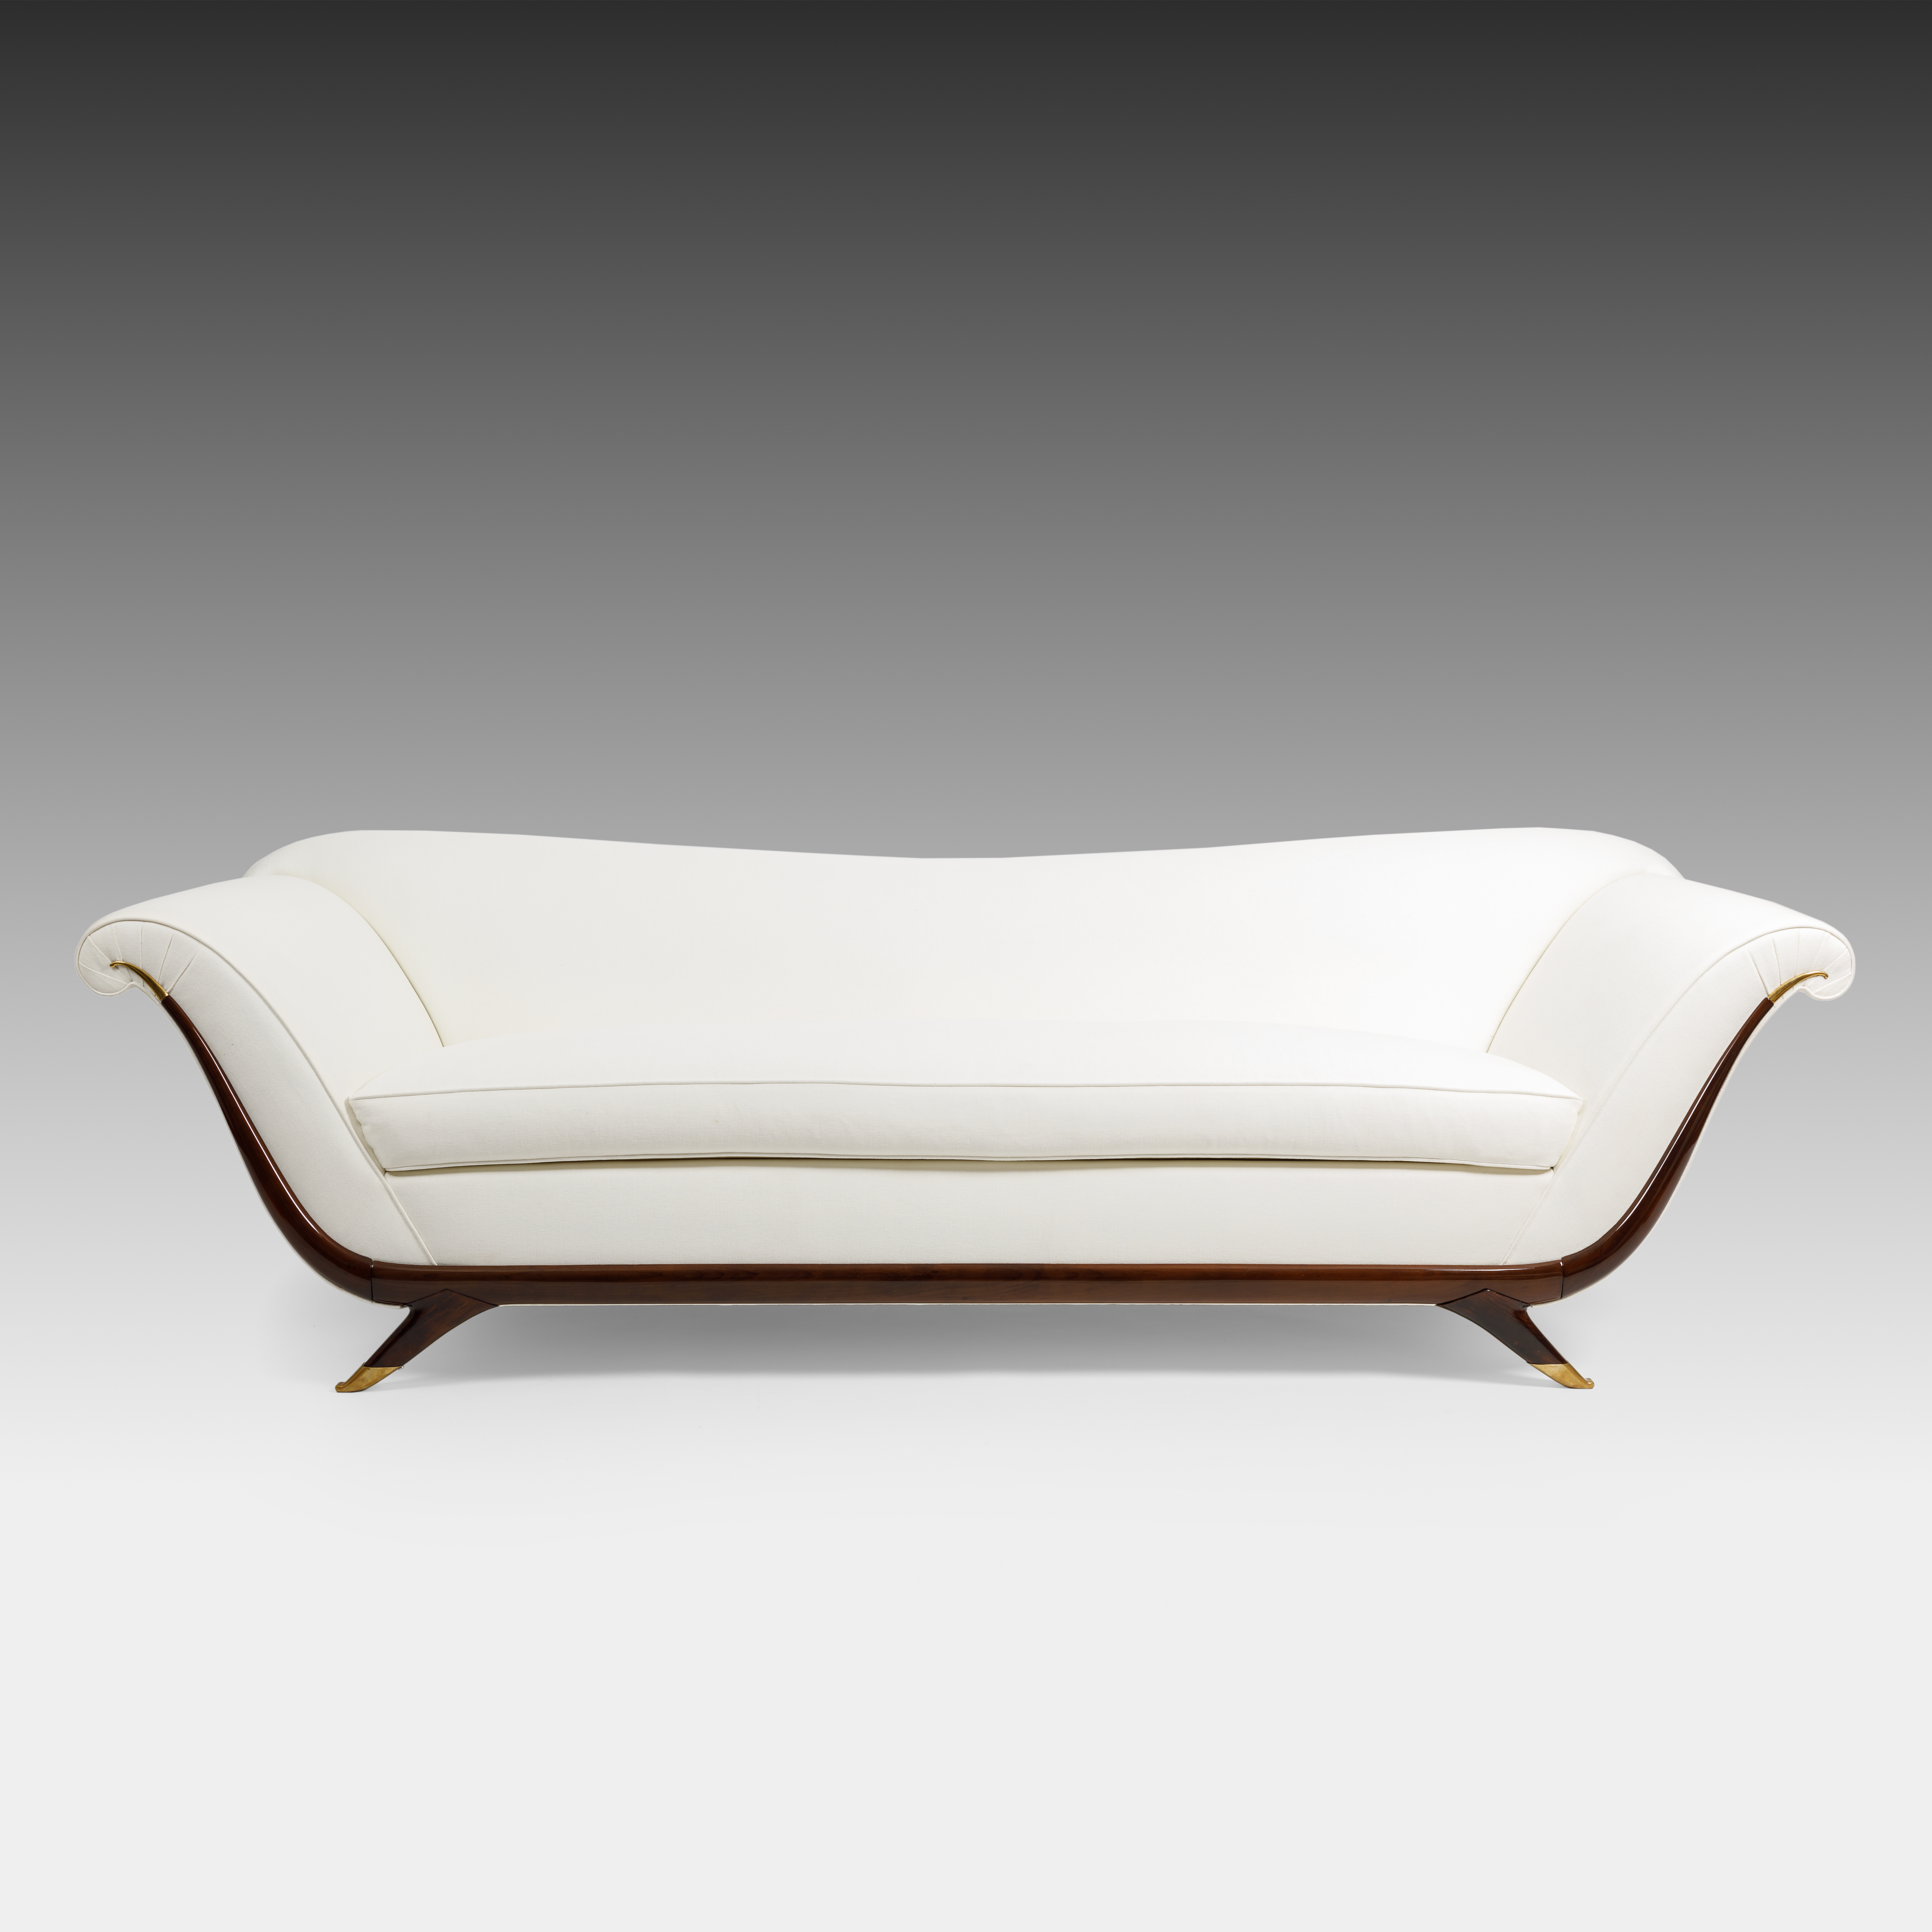 Large Sofa by Guglielmo Ulrich, attributed to | soyun k.